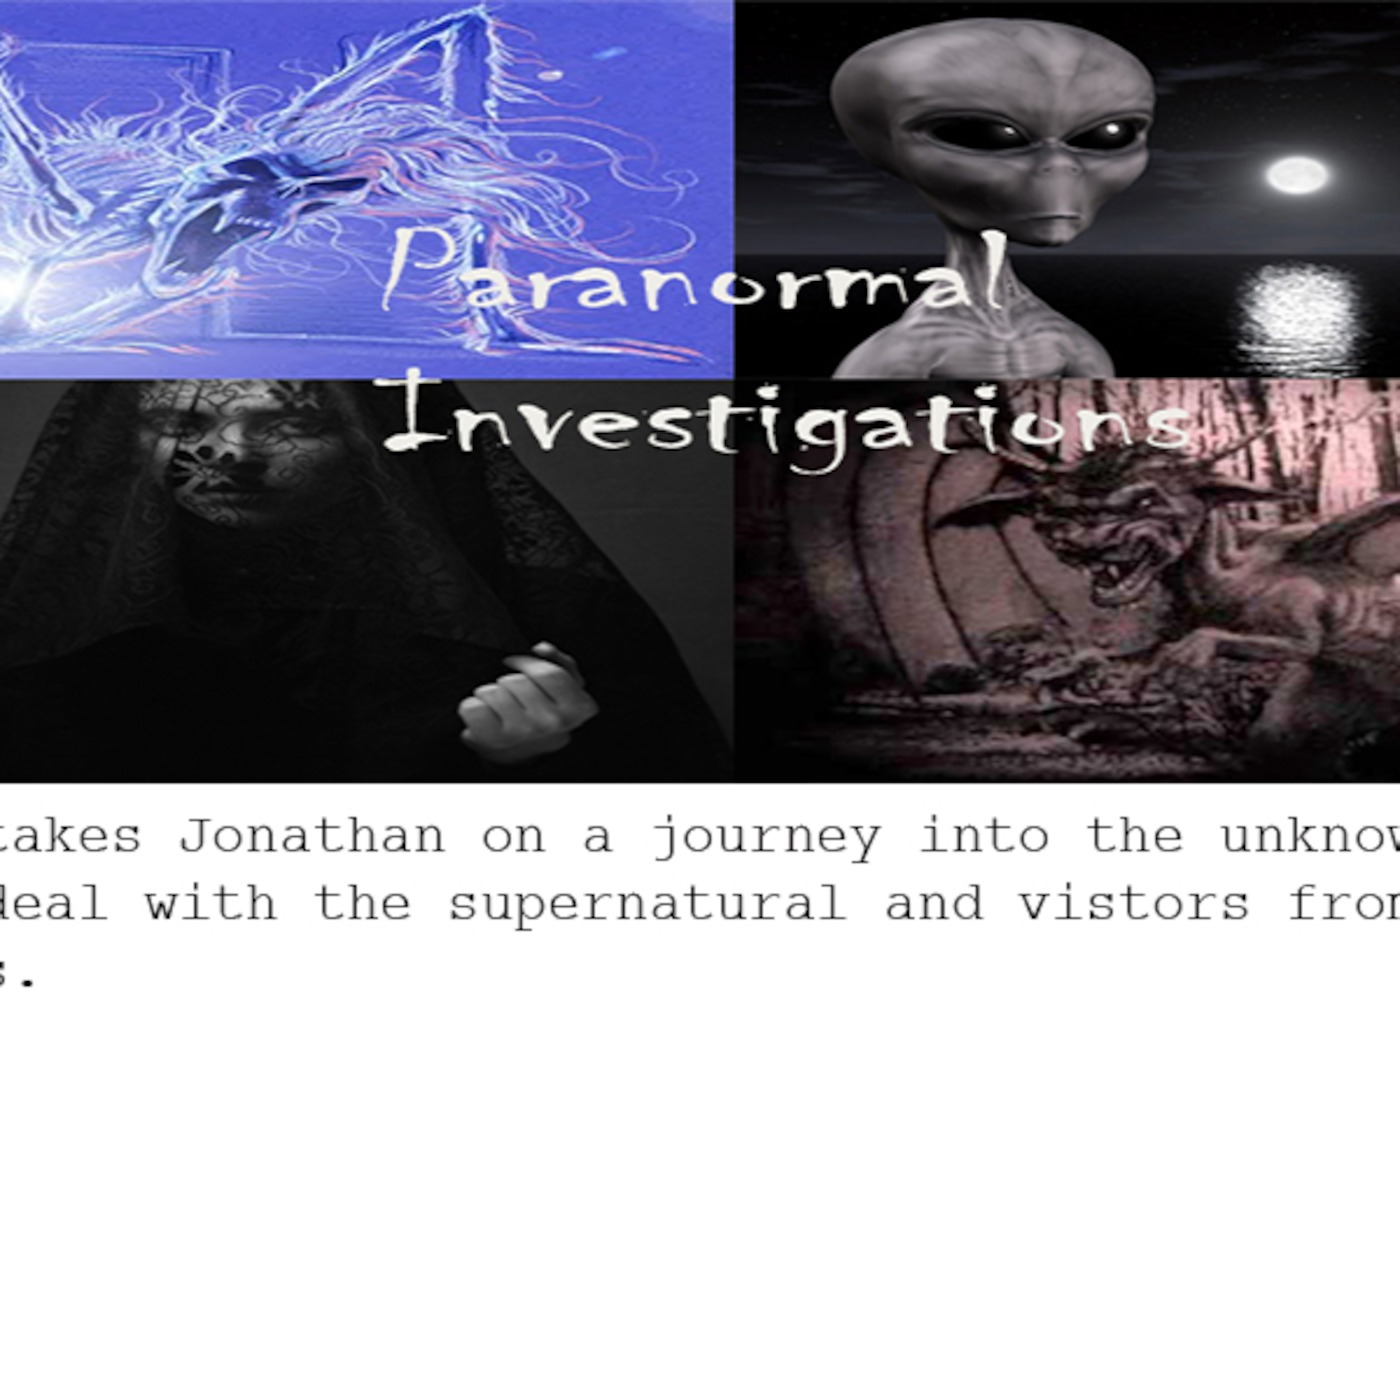 Paranormal Investigations